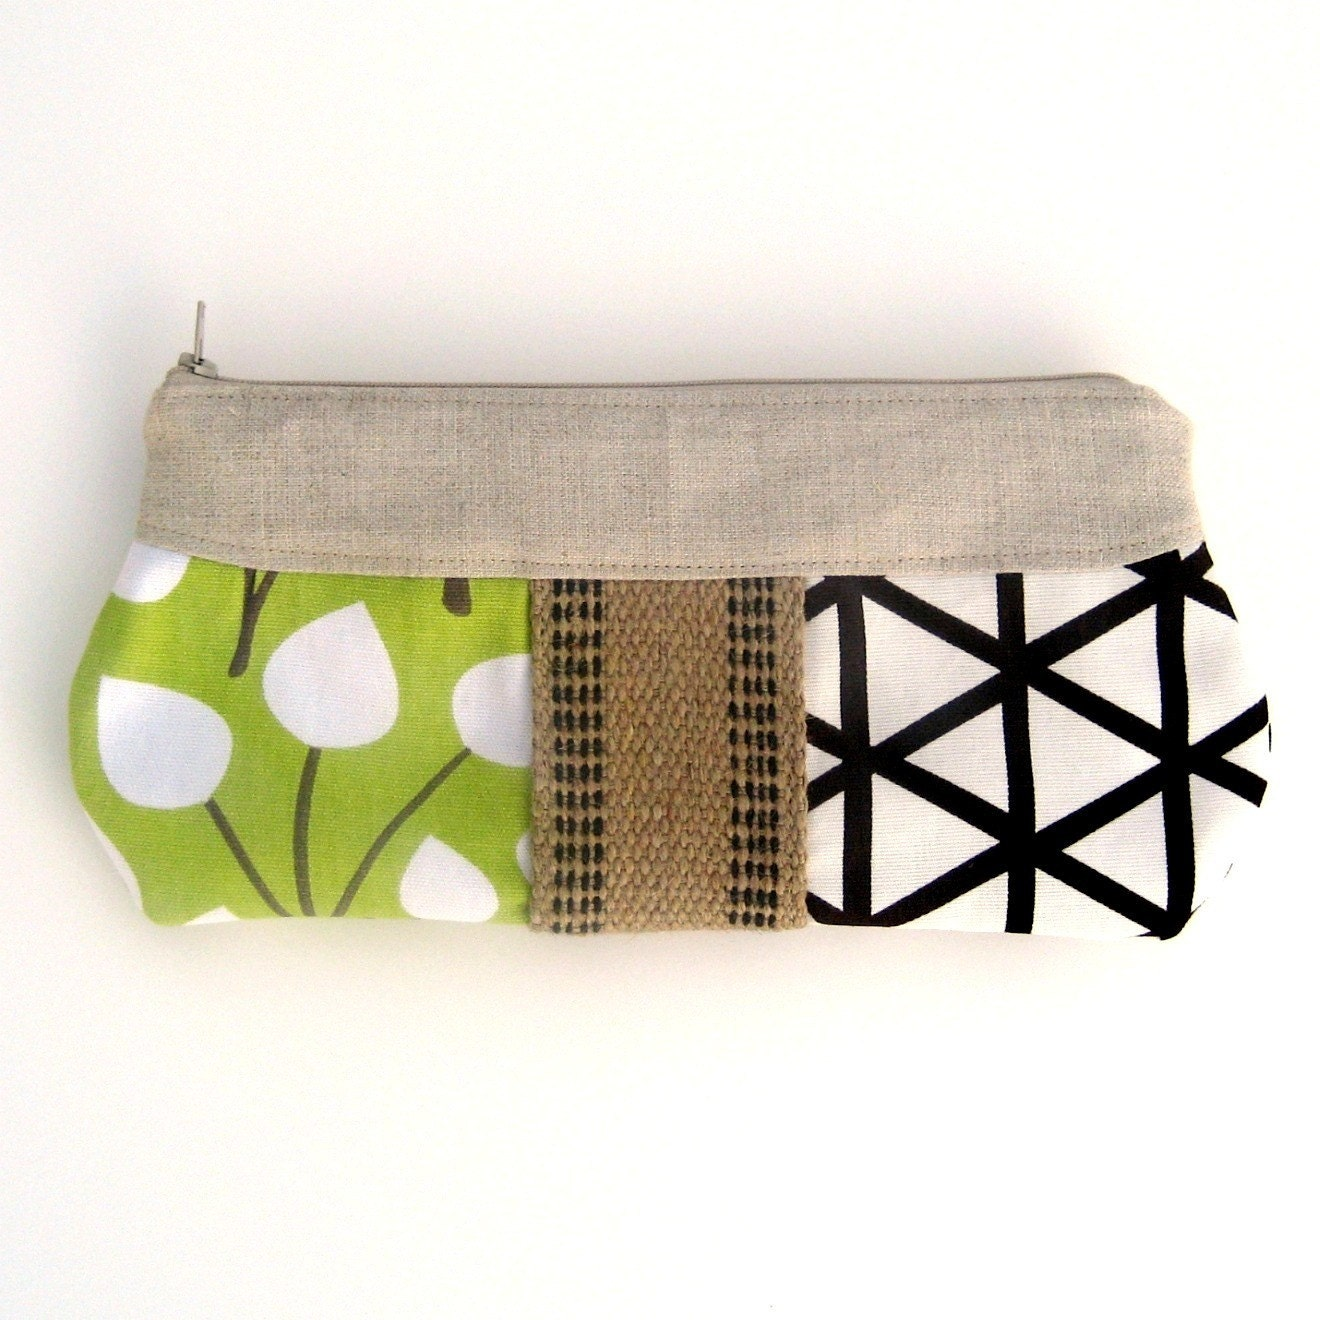 Modern Leaves clutch with jute detail